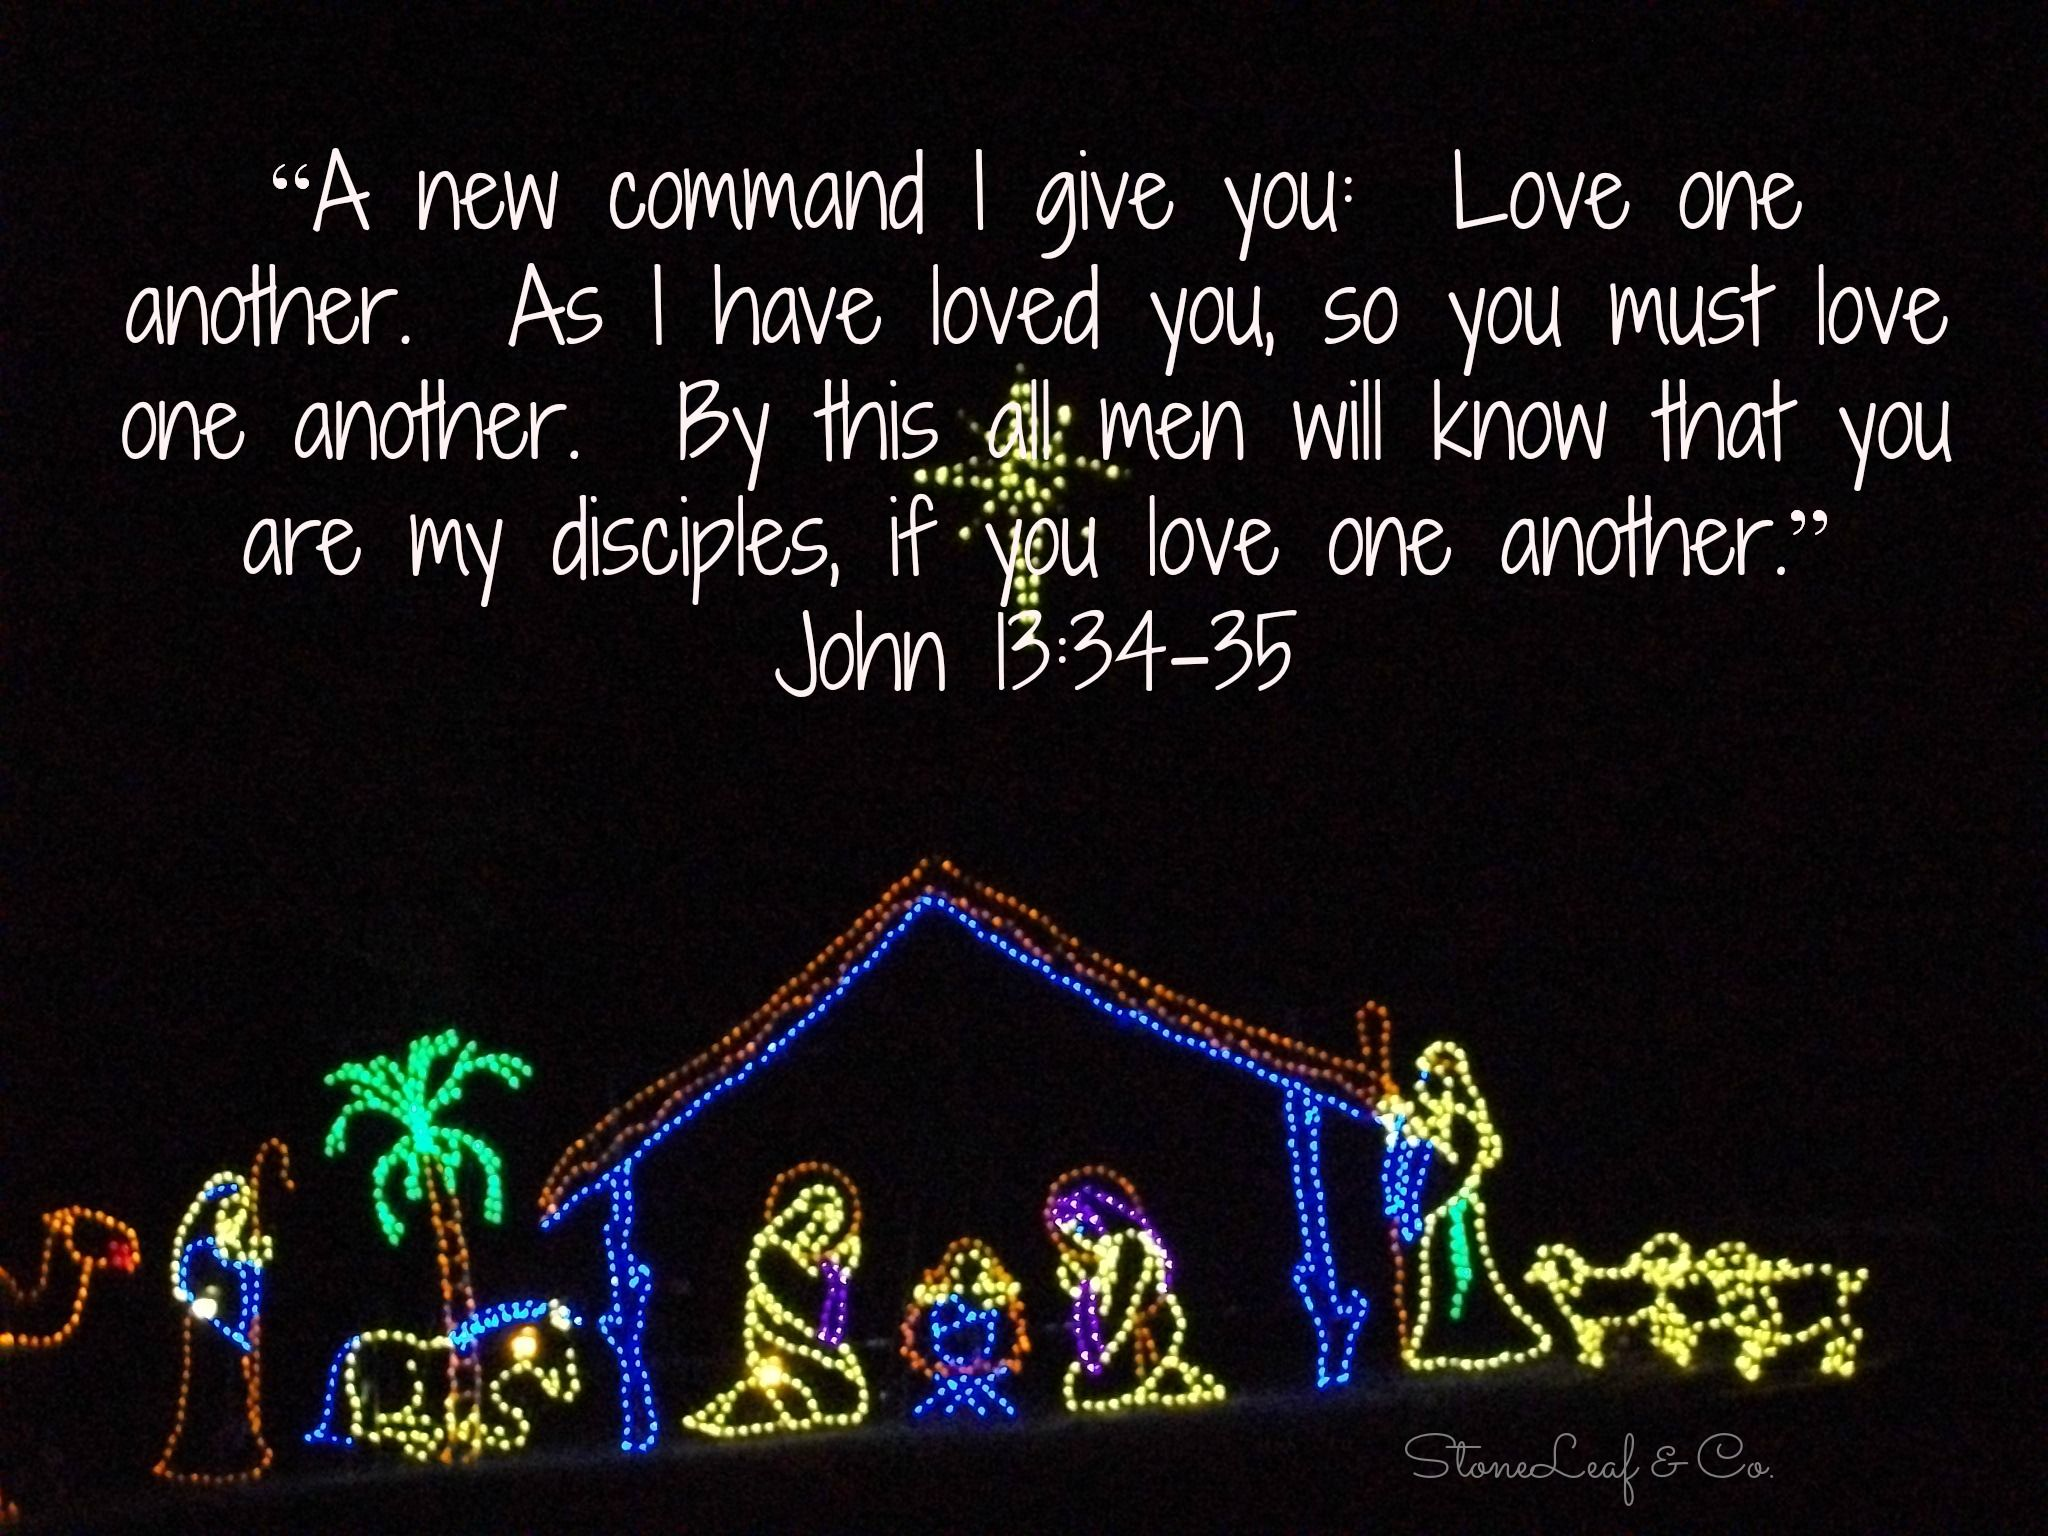 love in advent images - Google Search